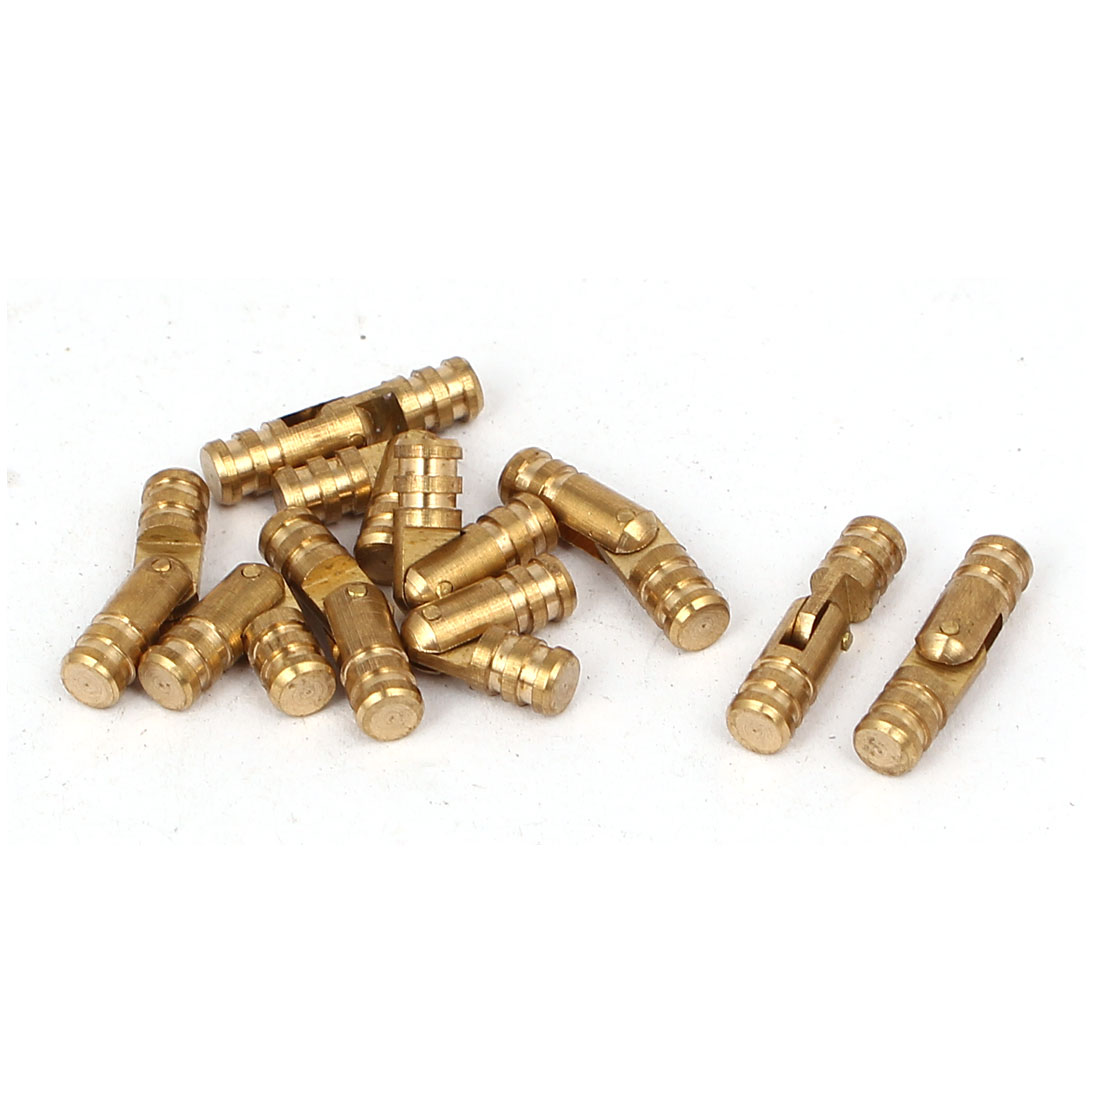 Cabinet Cylinder Folding Support Hinge Brass Tone 4mm x 17mm 10pcs